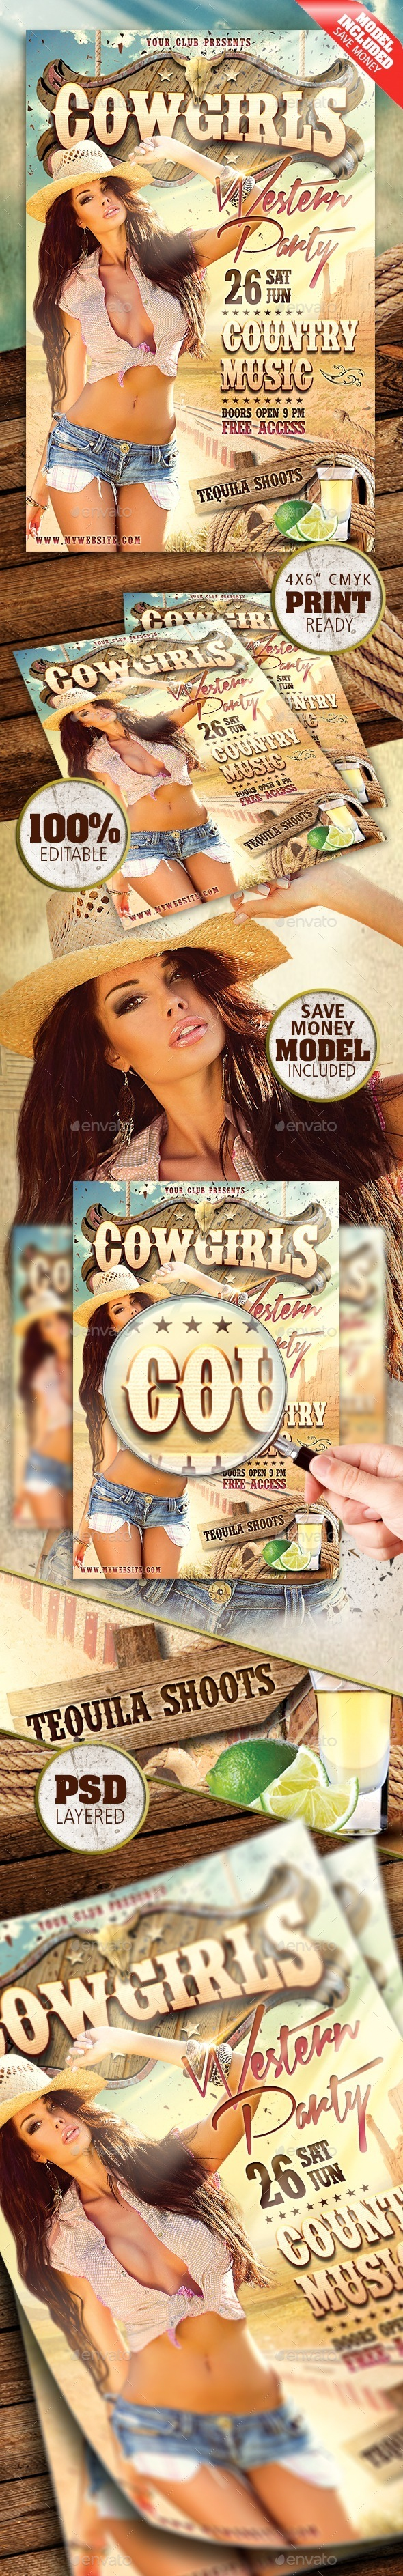 GraphicRiver Cowgirls Western Party 9536641